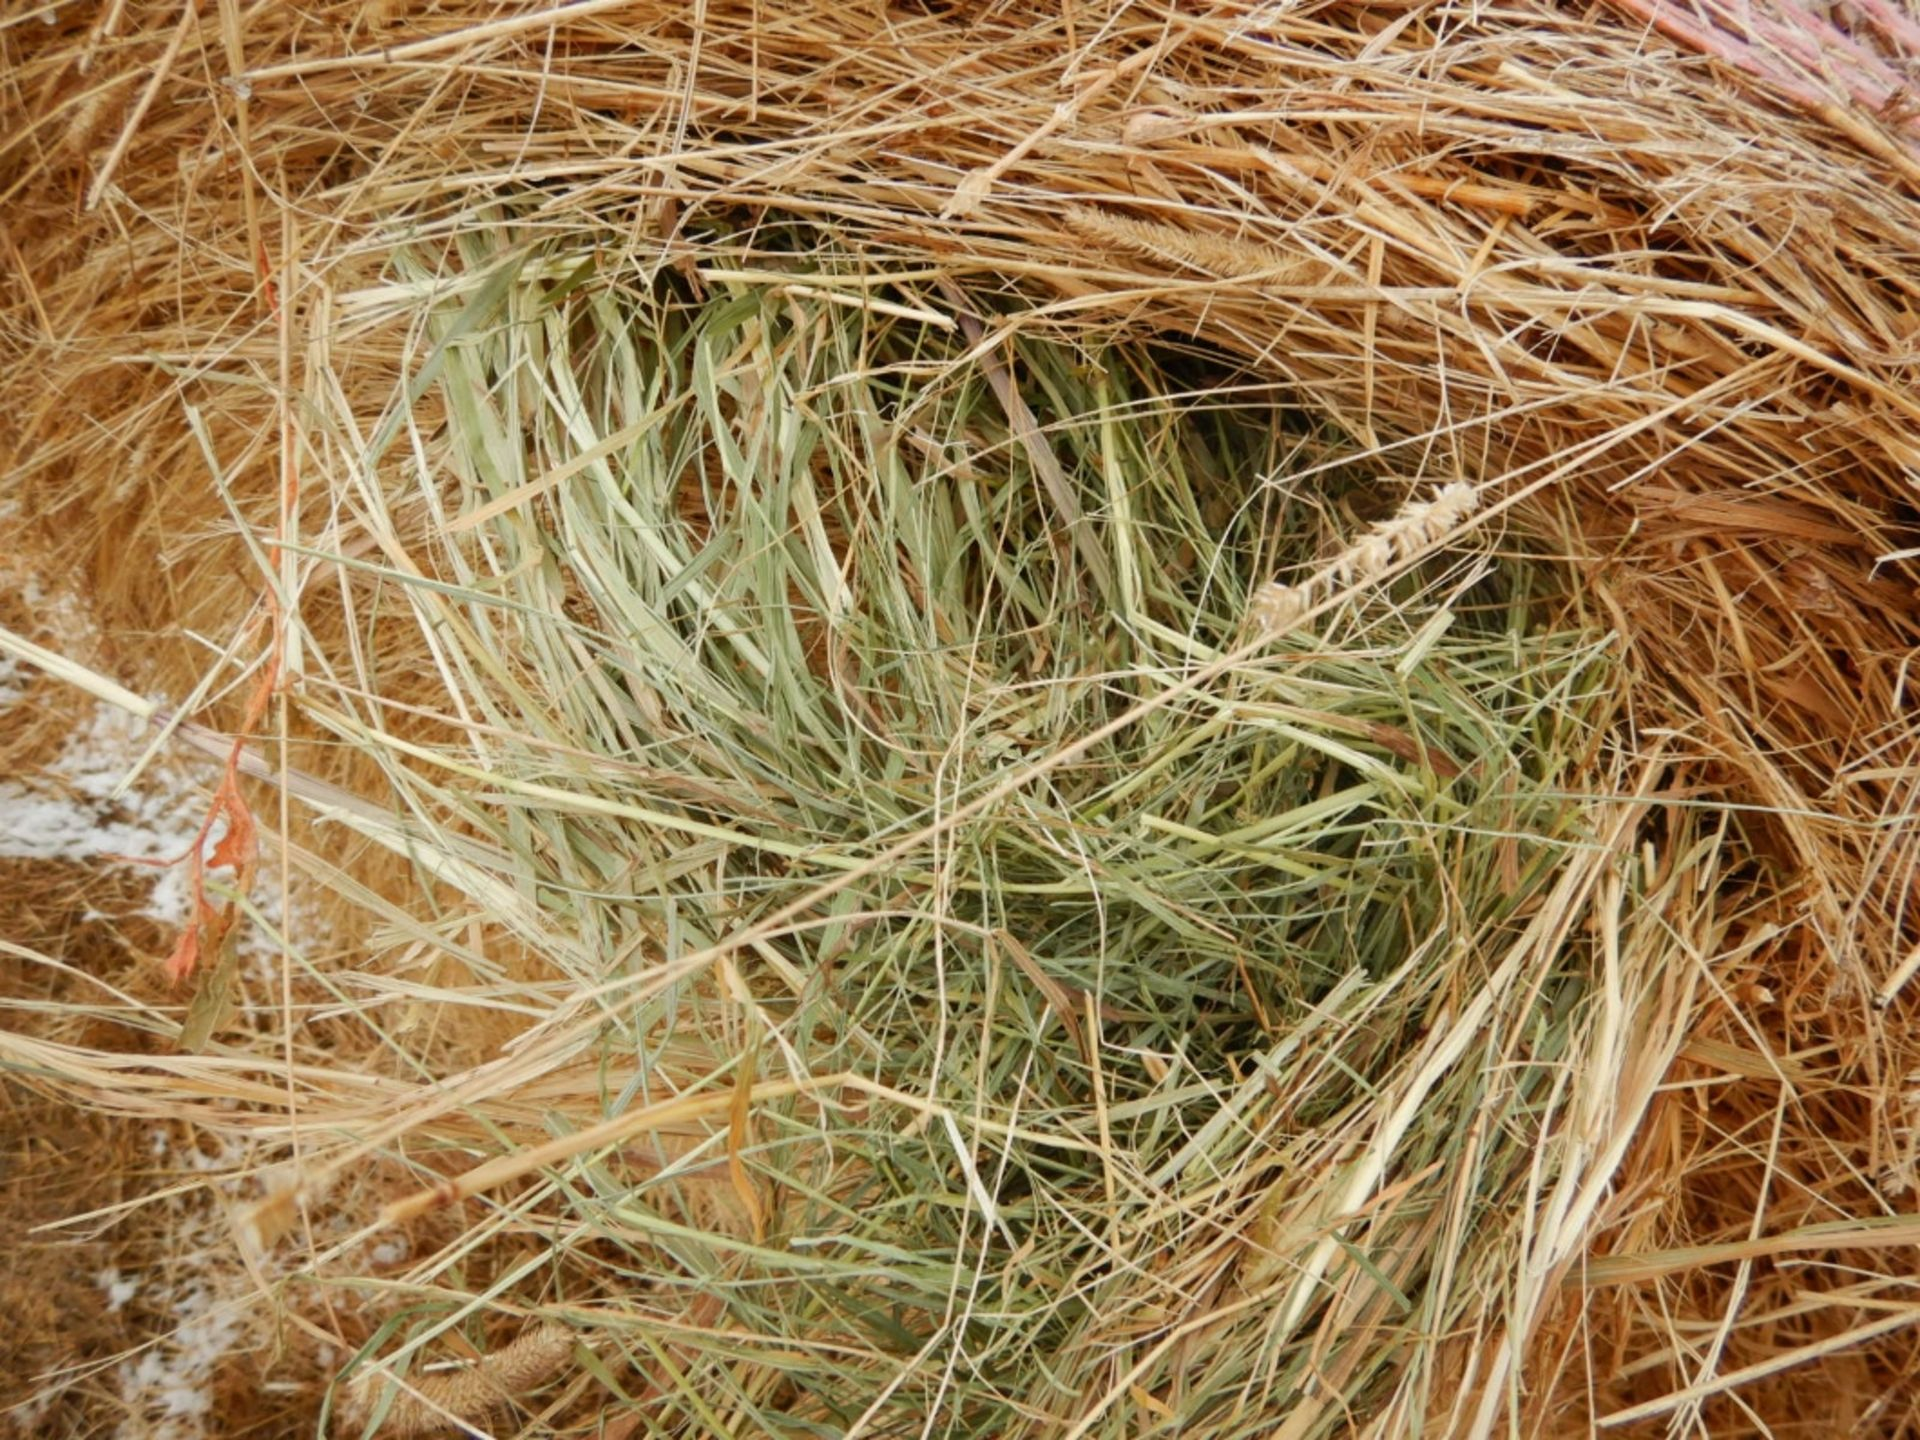 100 ++ ROLLS OF GRASS HAY - MOSTLY W/NET WRAP - Image 9 of 9